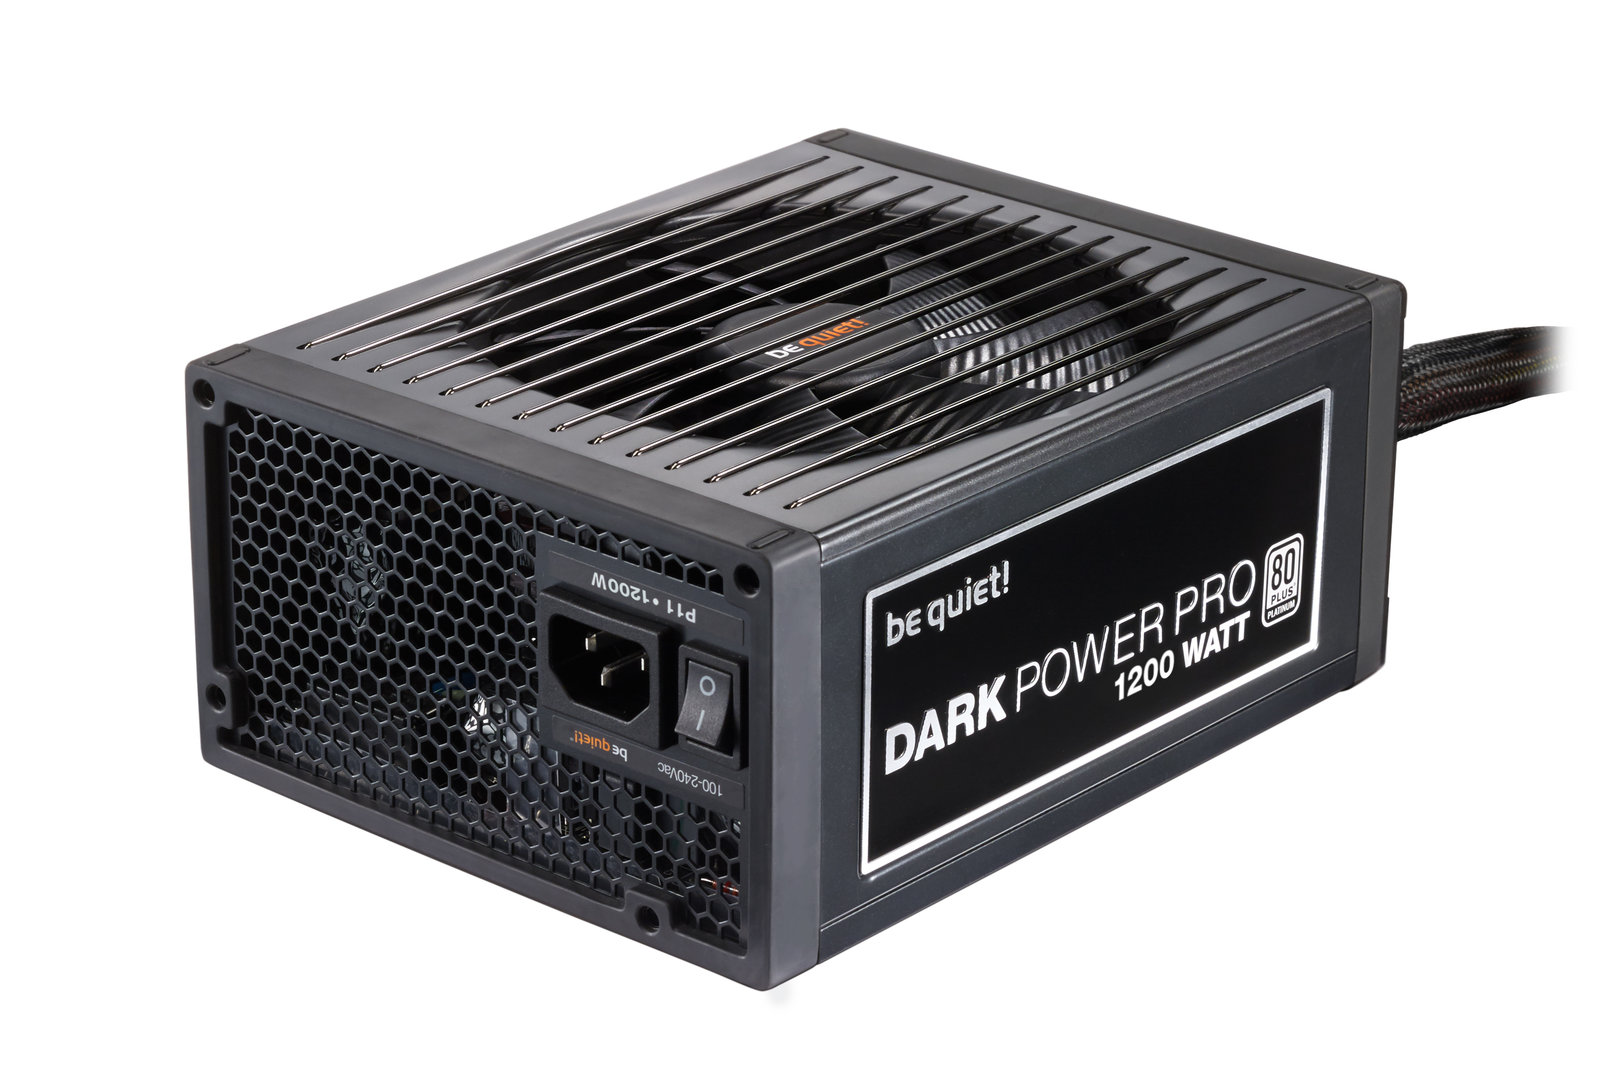 be quiet! Dark Power Pro P11